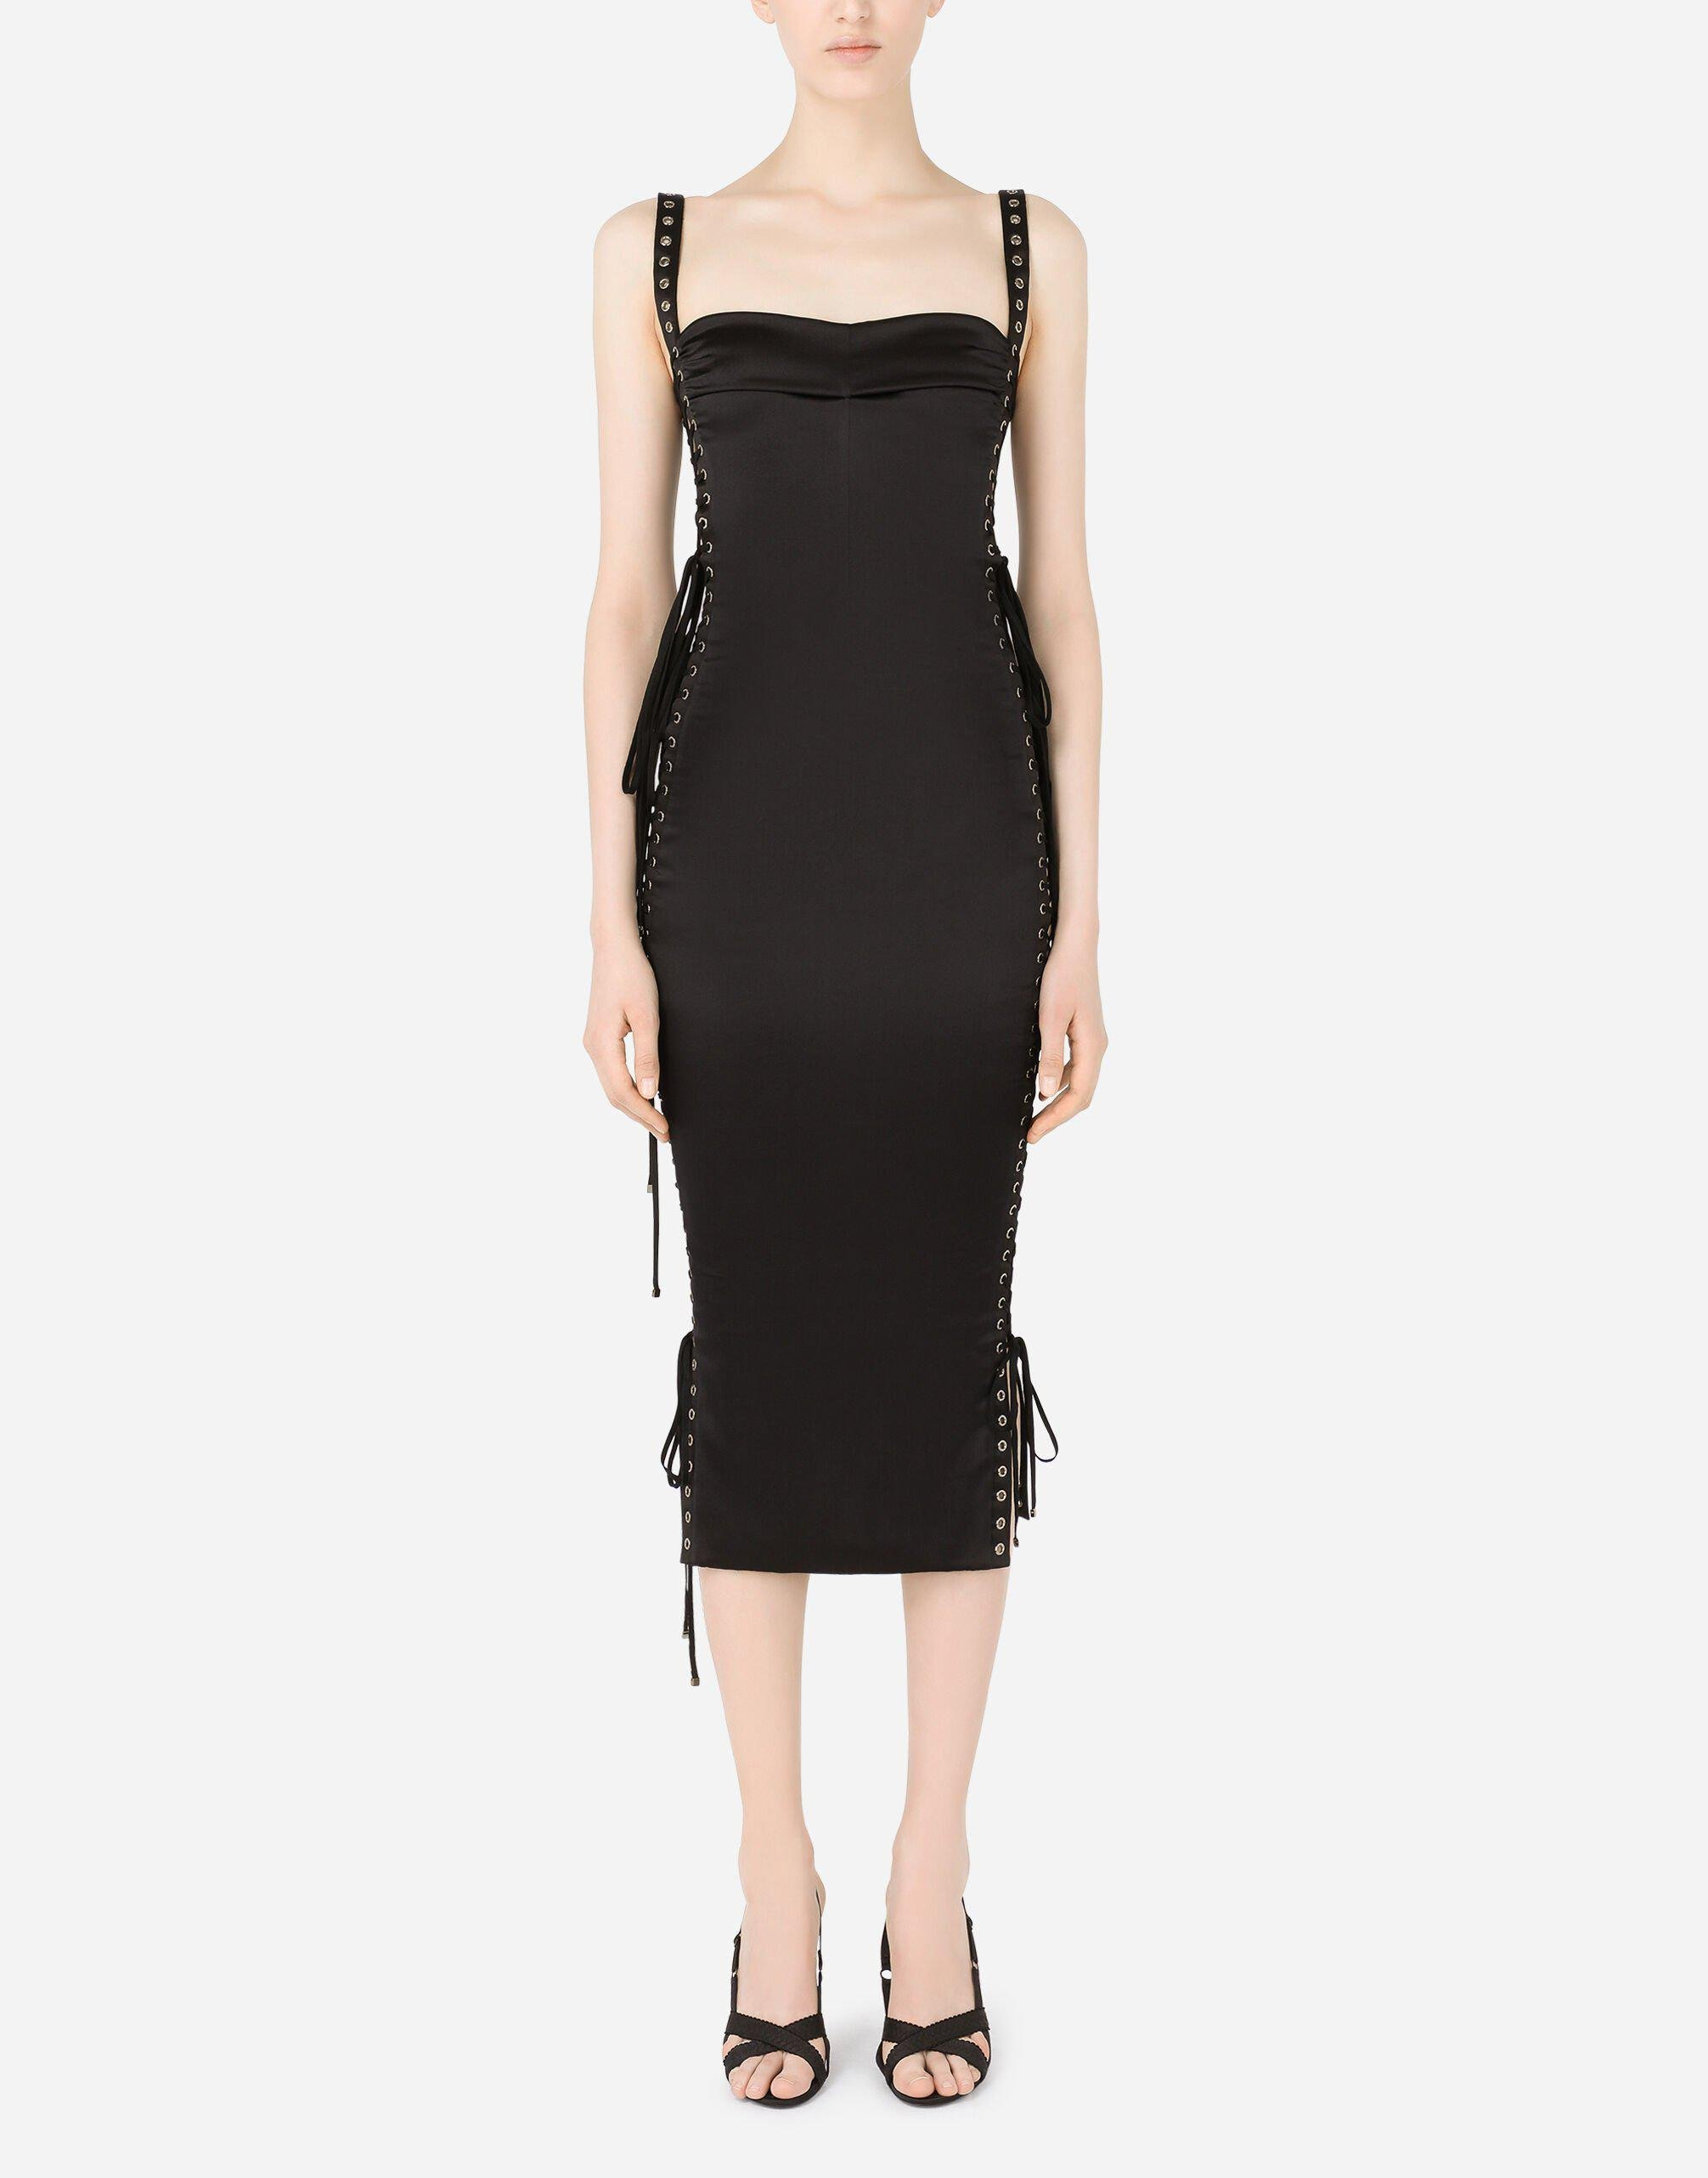 Satin calf-length dress with laces and eyelets